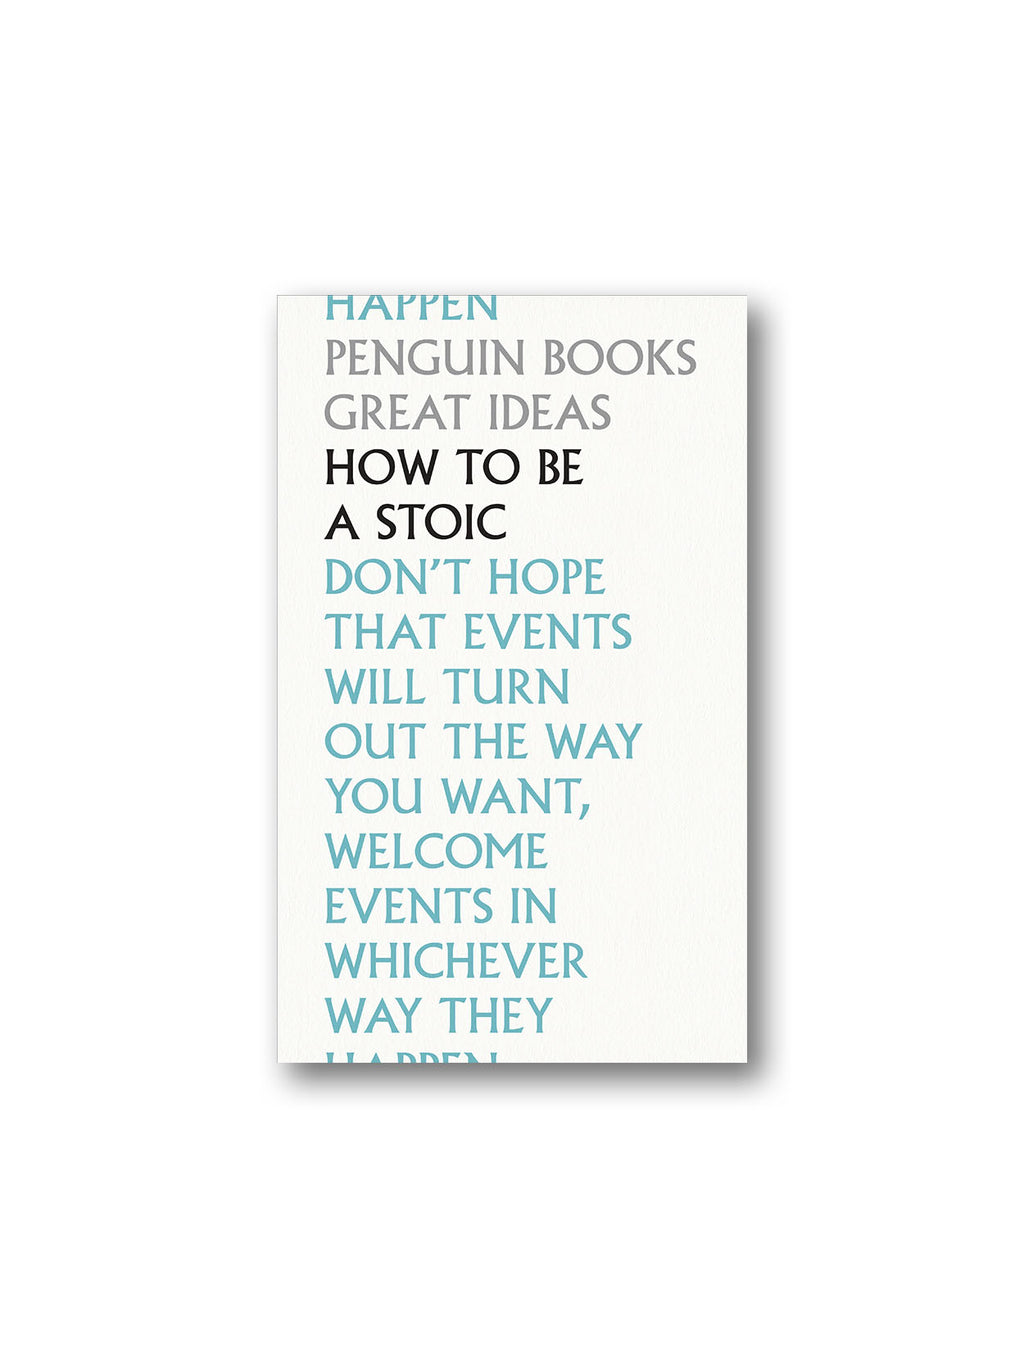 How To Be a Stoic - Penguin Great Ideas